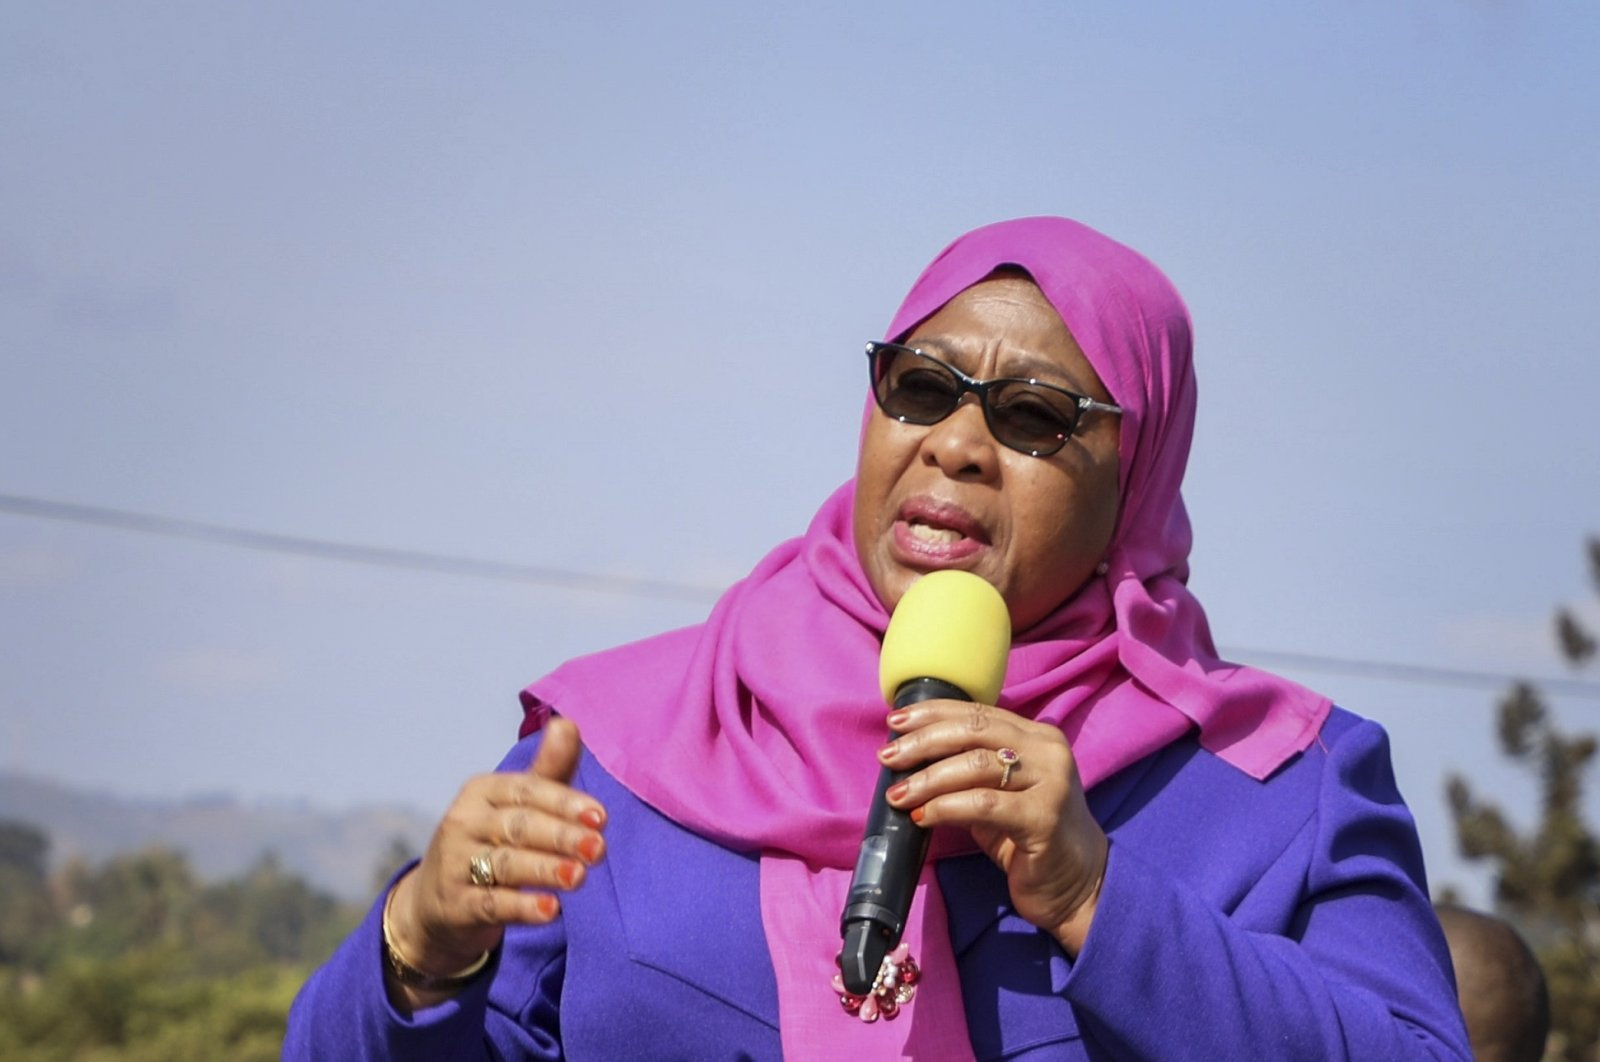 Tanzania's then Vice President Samia Suluhu Hassan speaks during a tour of the Tanga region of Tanzania, March 16, 2021. (AP Photo)